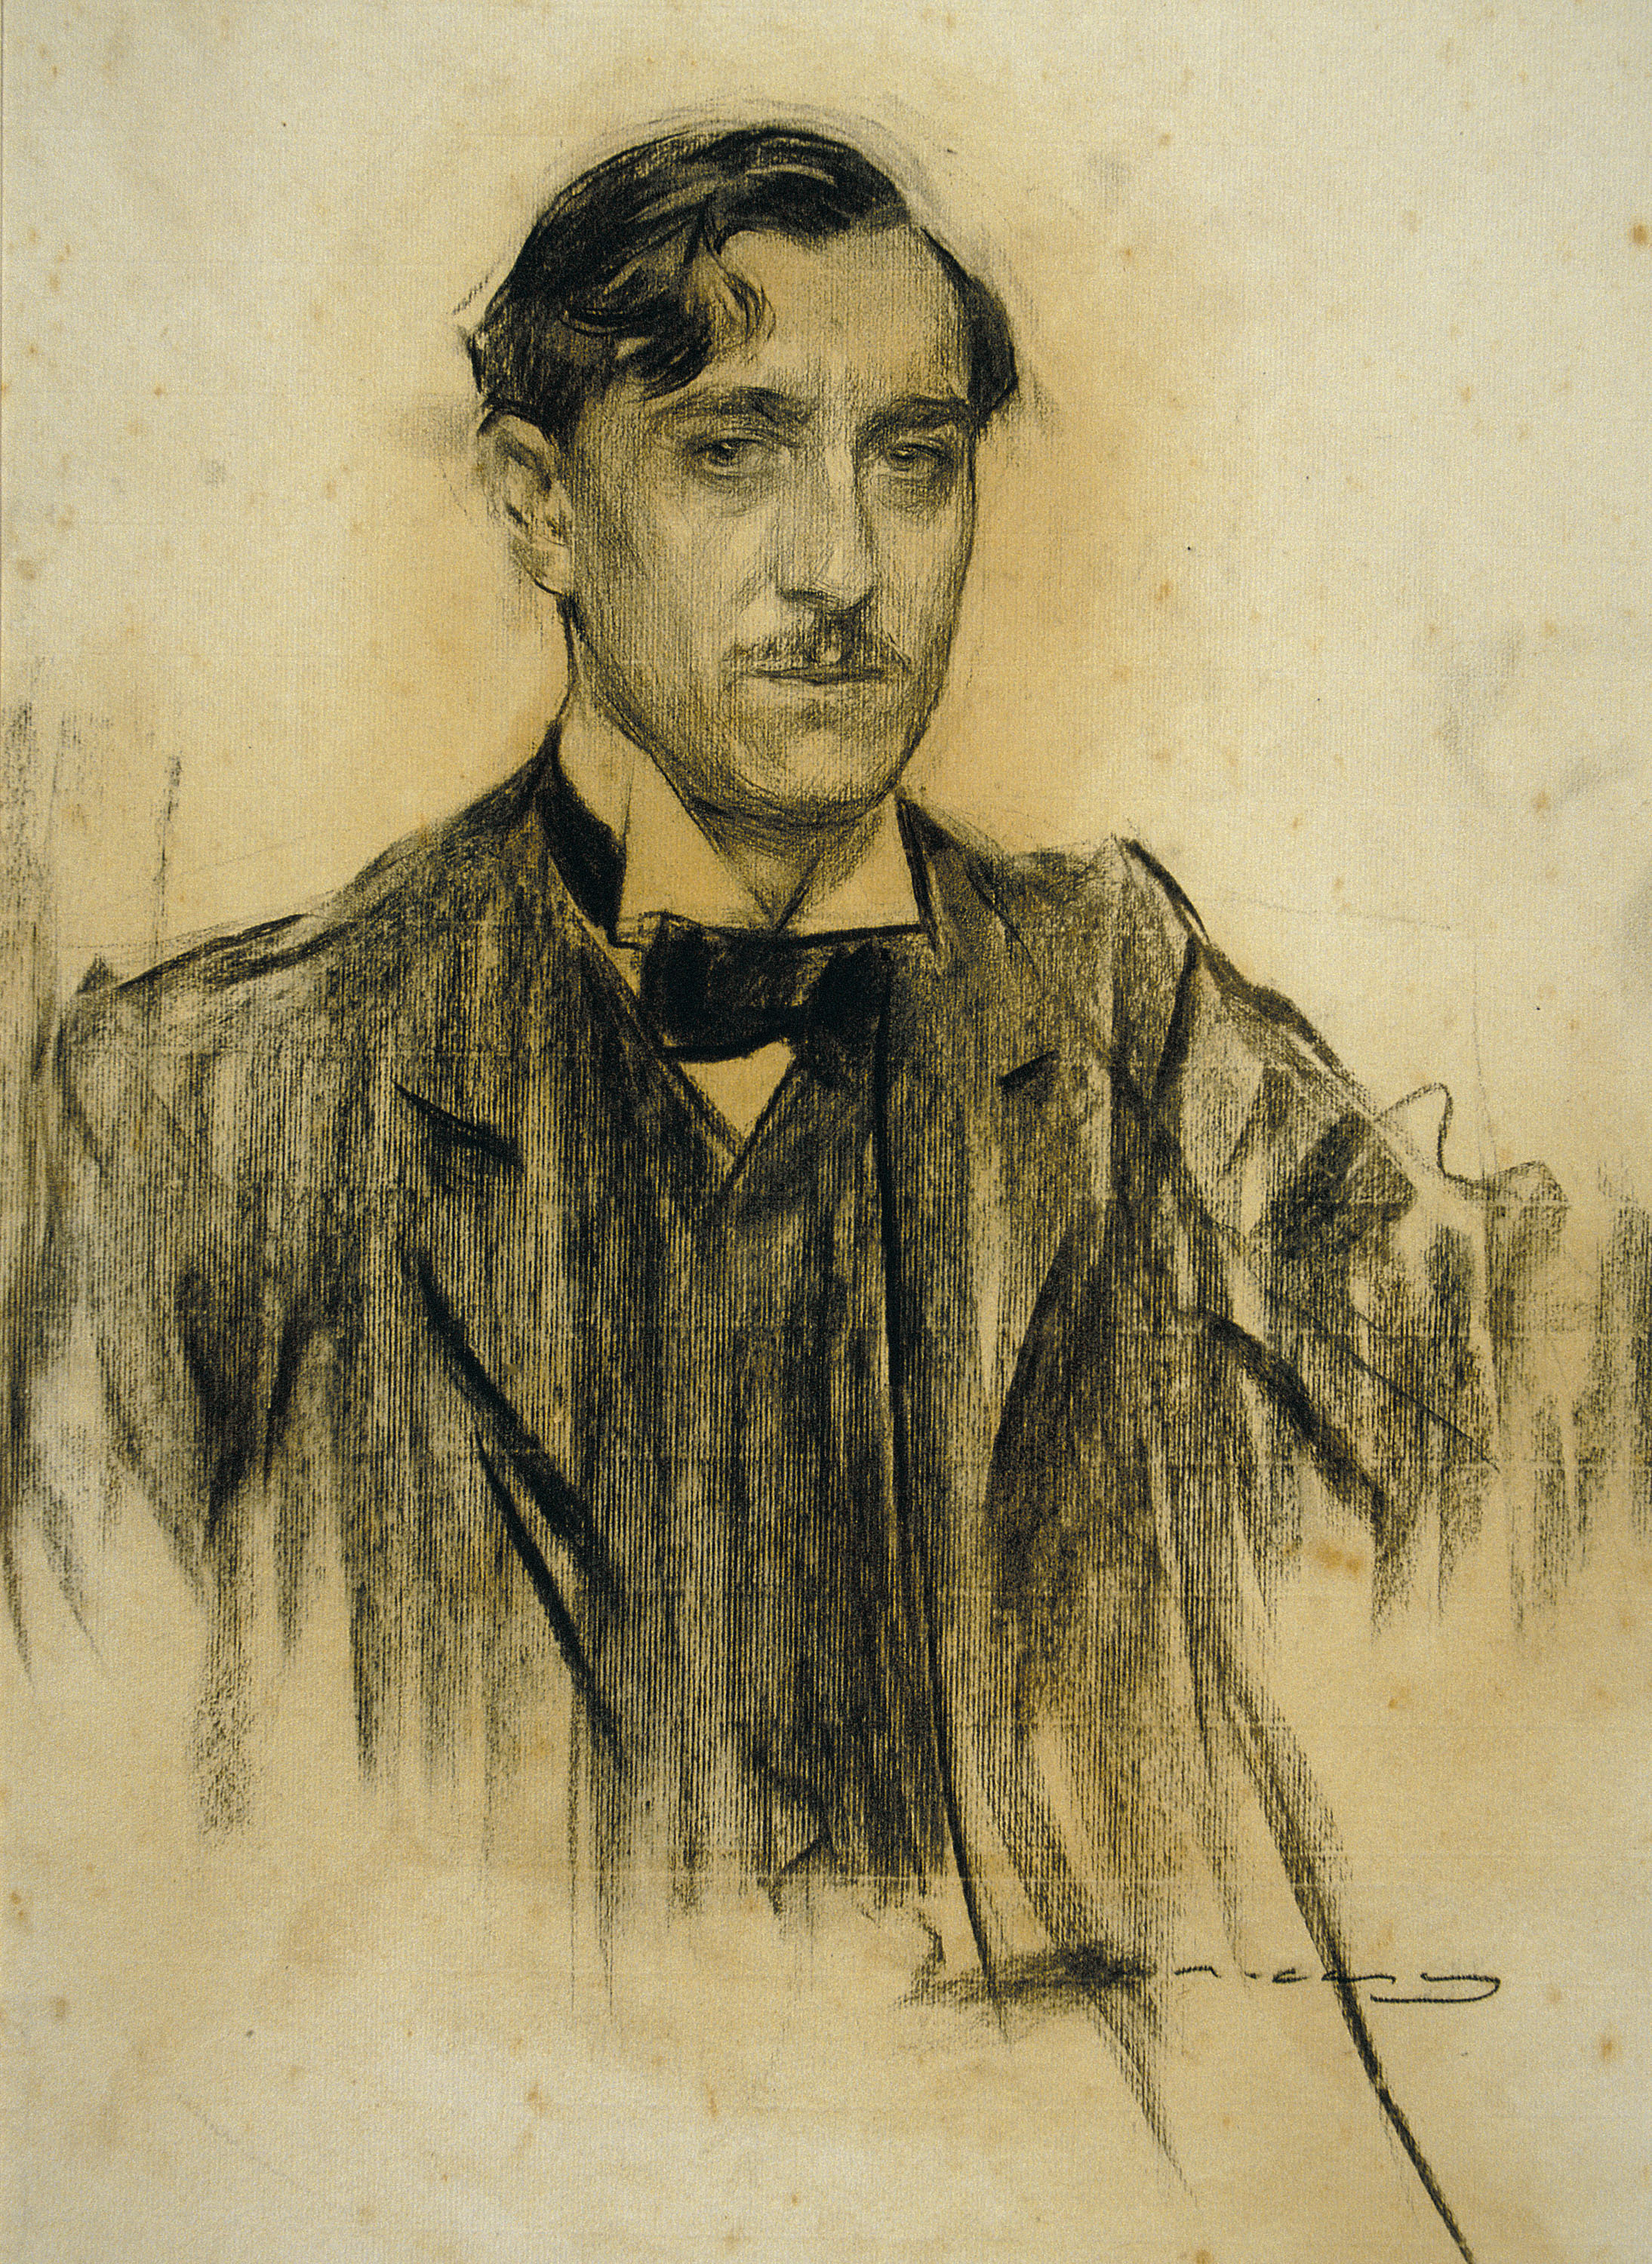 Ramon Casas - Portrait of Ramiro de Maeztu - Madrid, circa 1904-1905